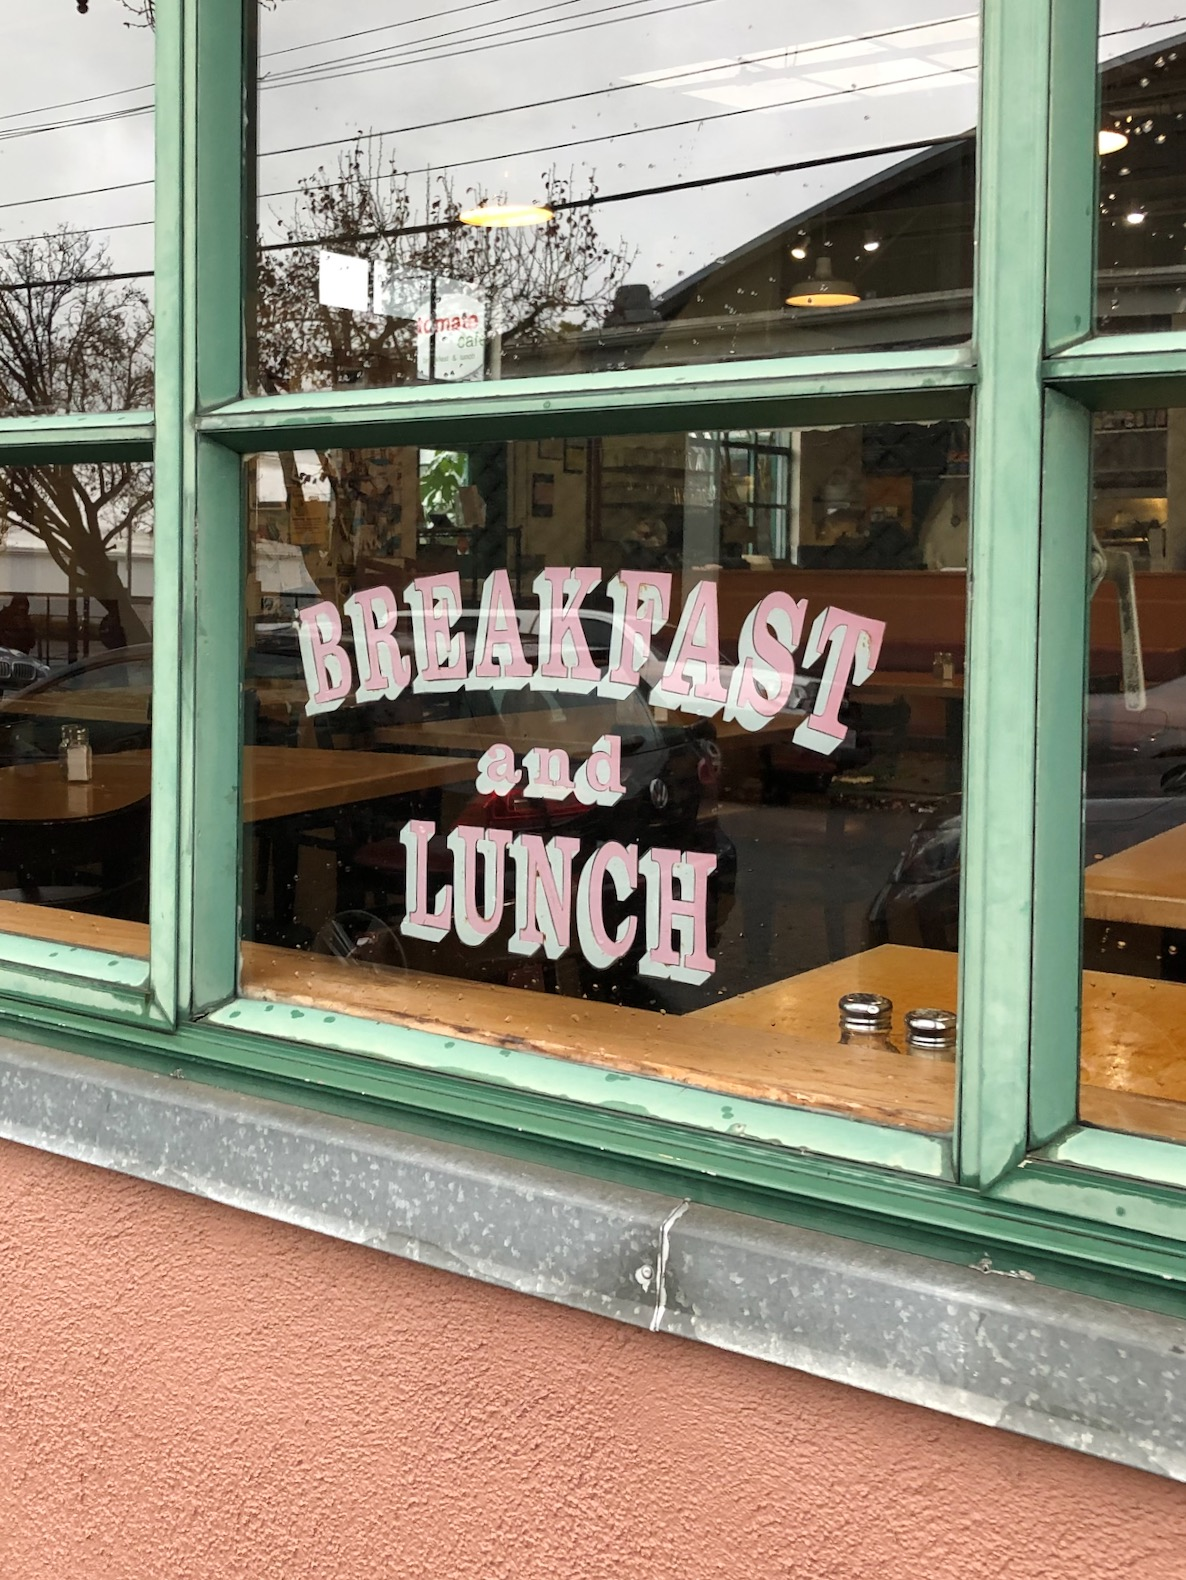 window of restaurant with breakfast and lunch sign